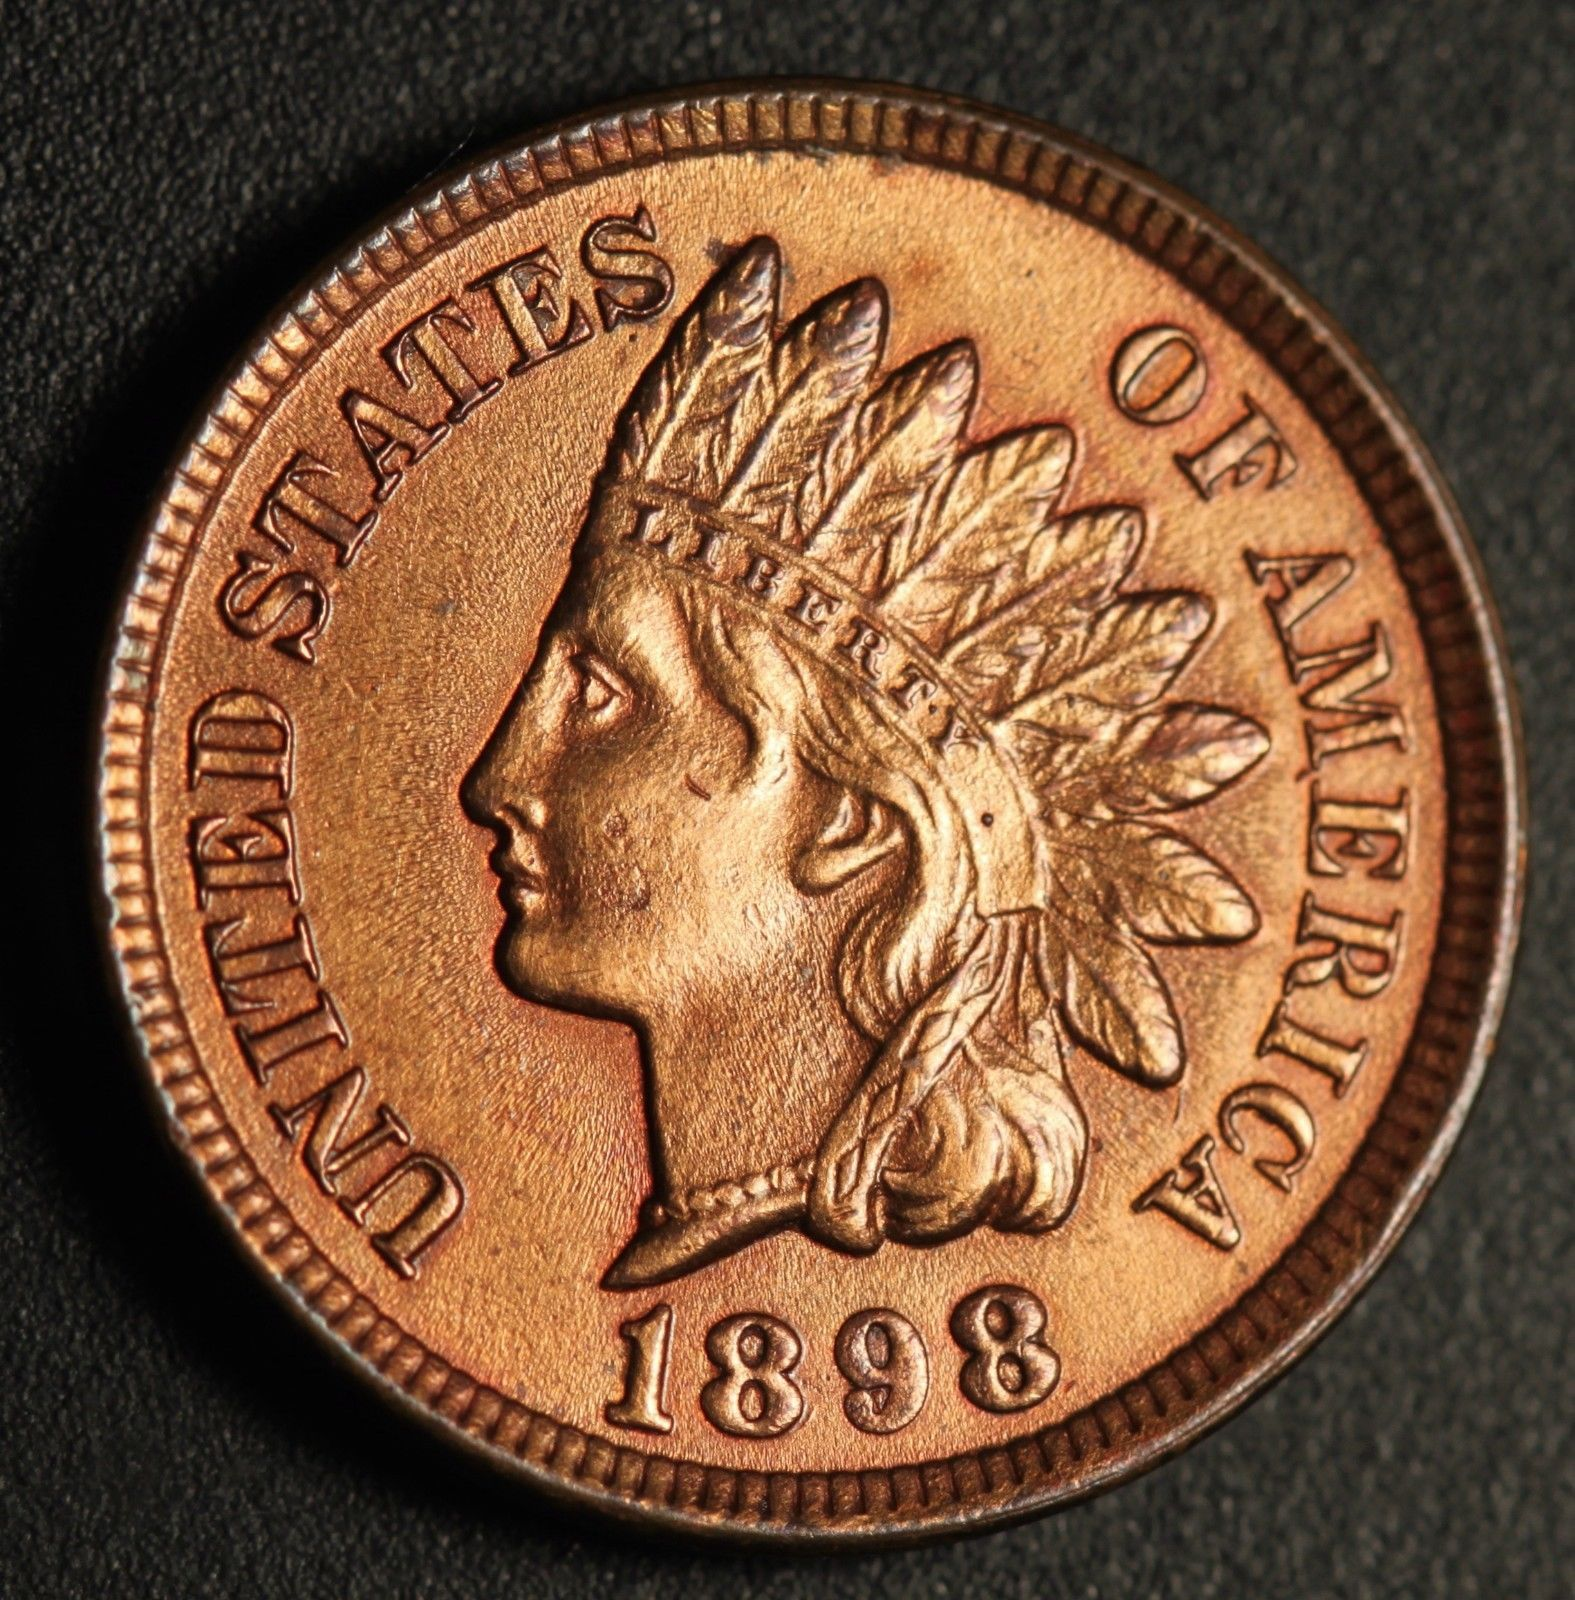 1898 RPD-011 - Indian Head Penny - Photo by Ed Nathanson